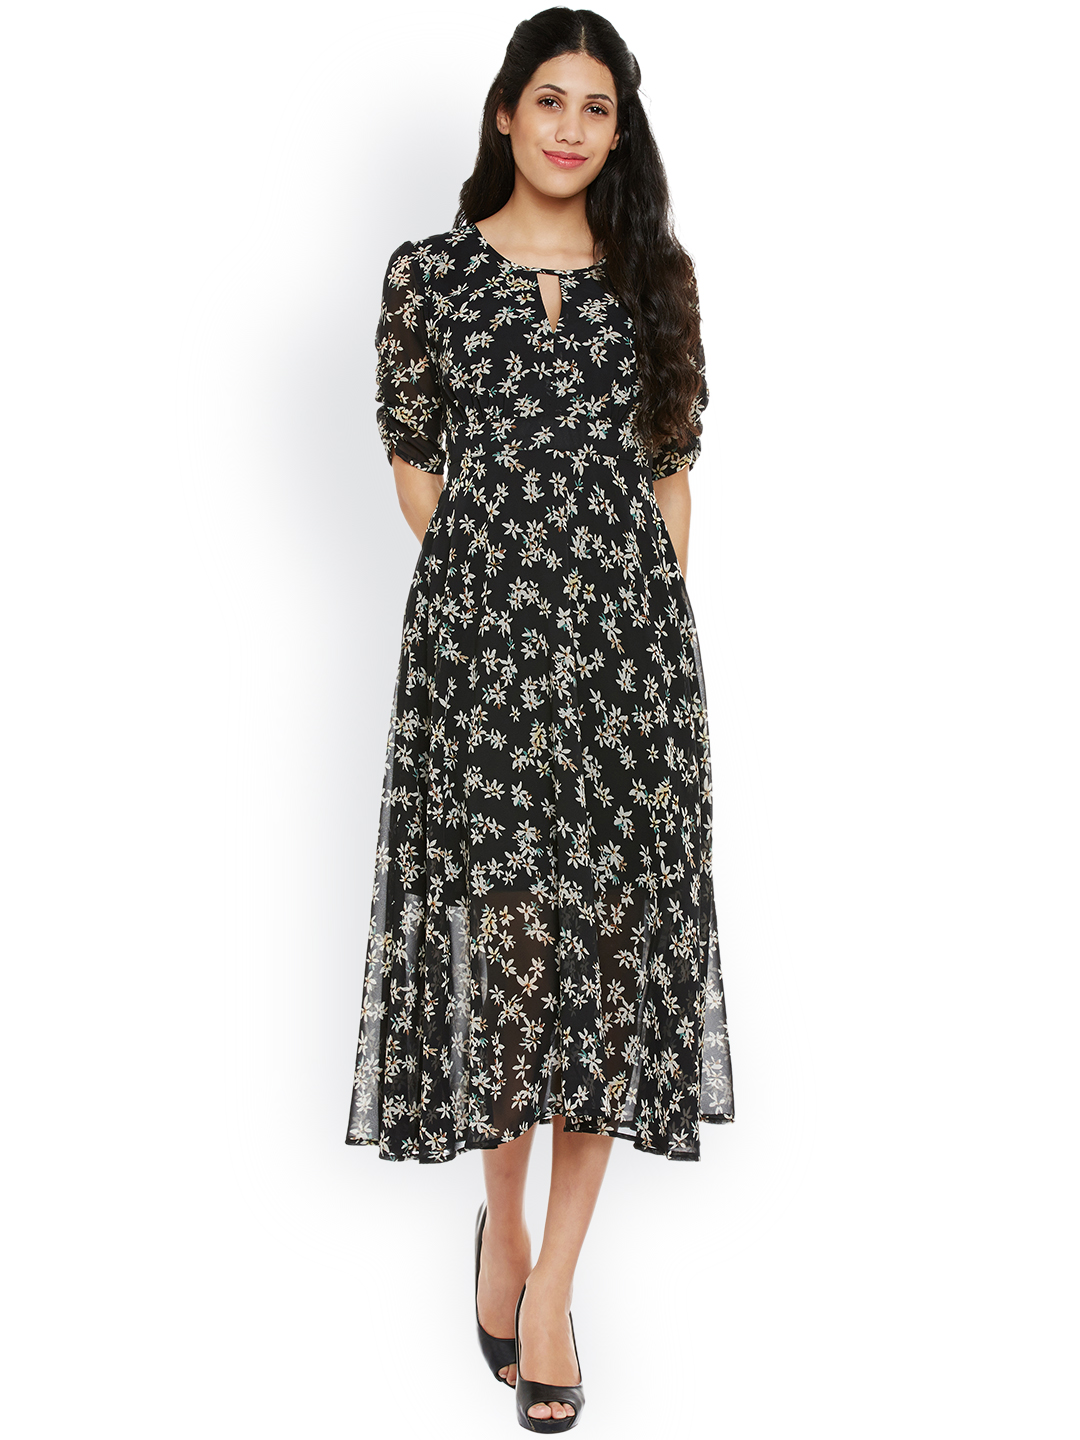 Buy Nun Women Black Floral Print Fit Flare Midi Dress Online